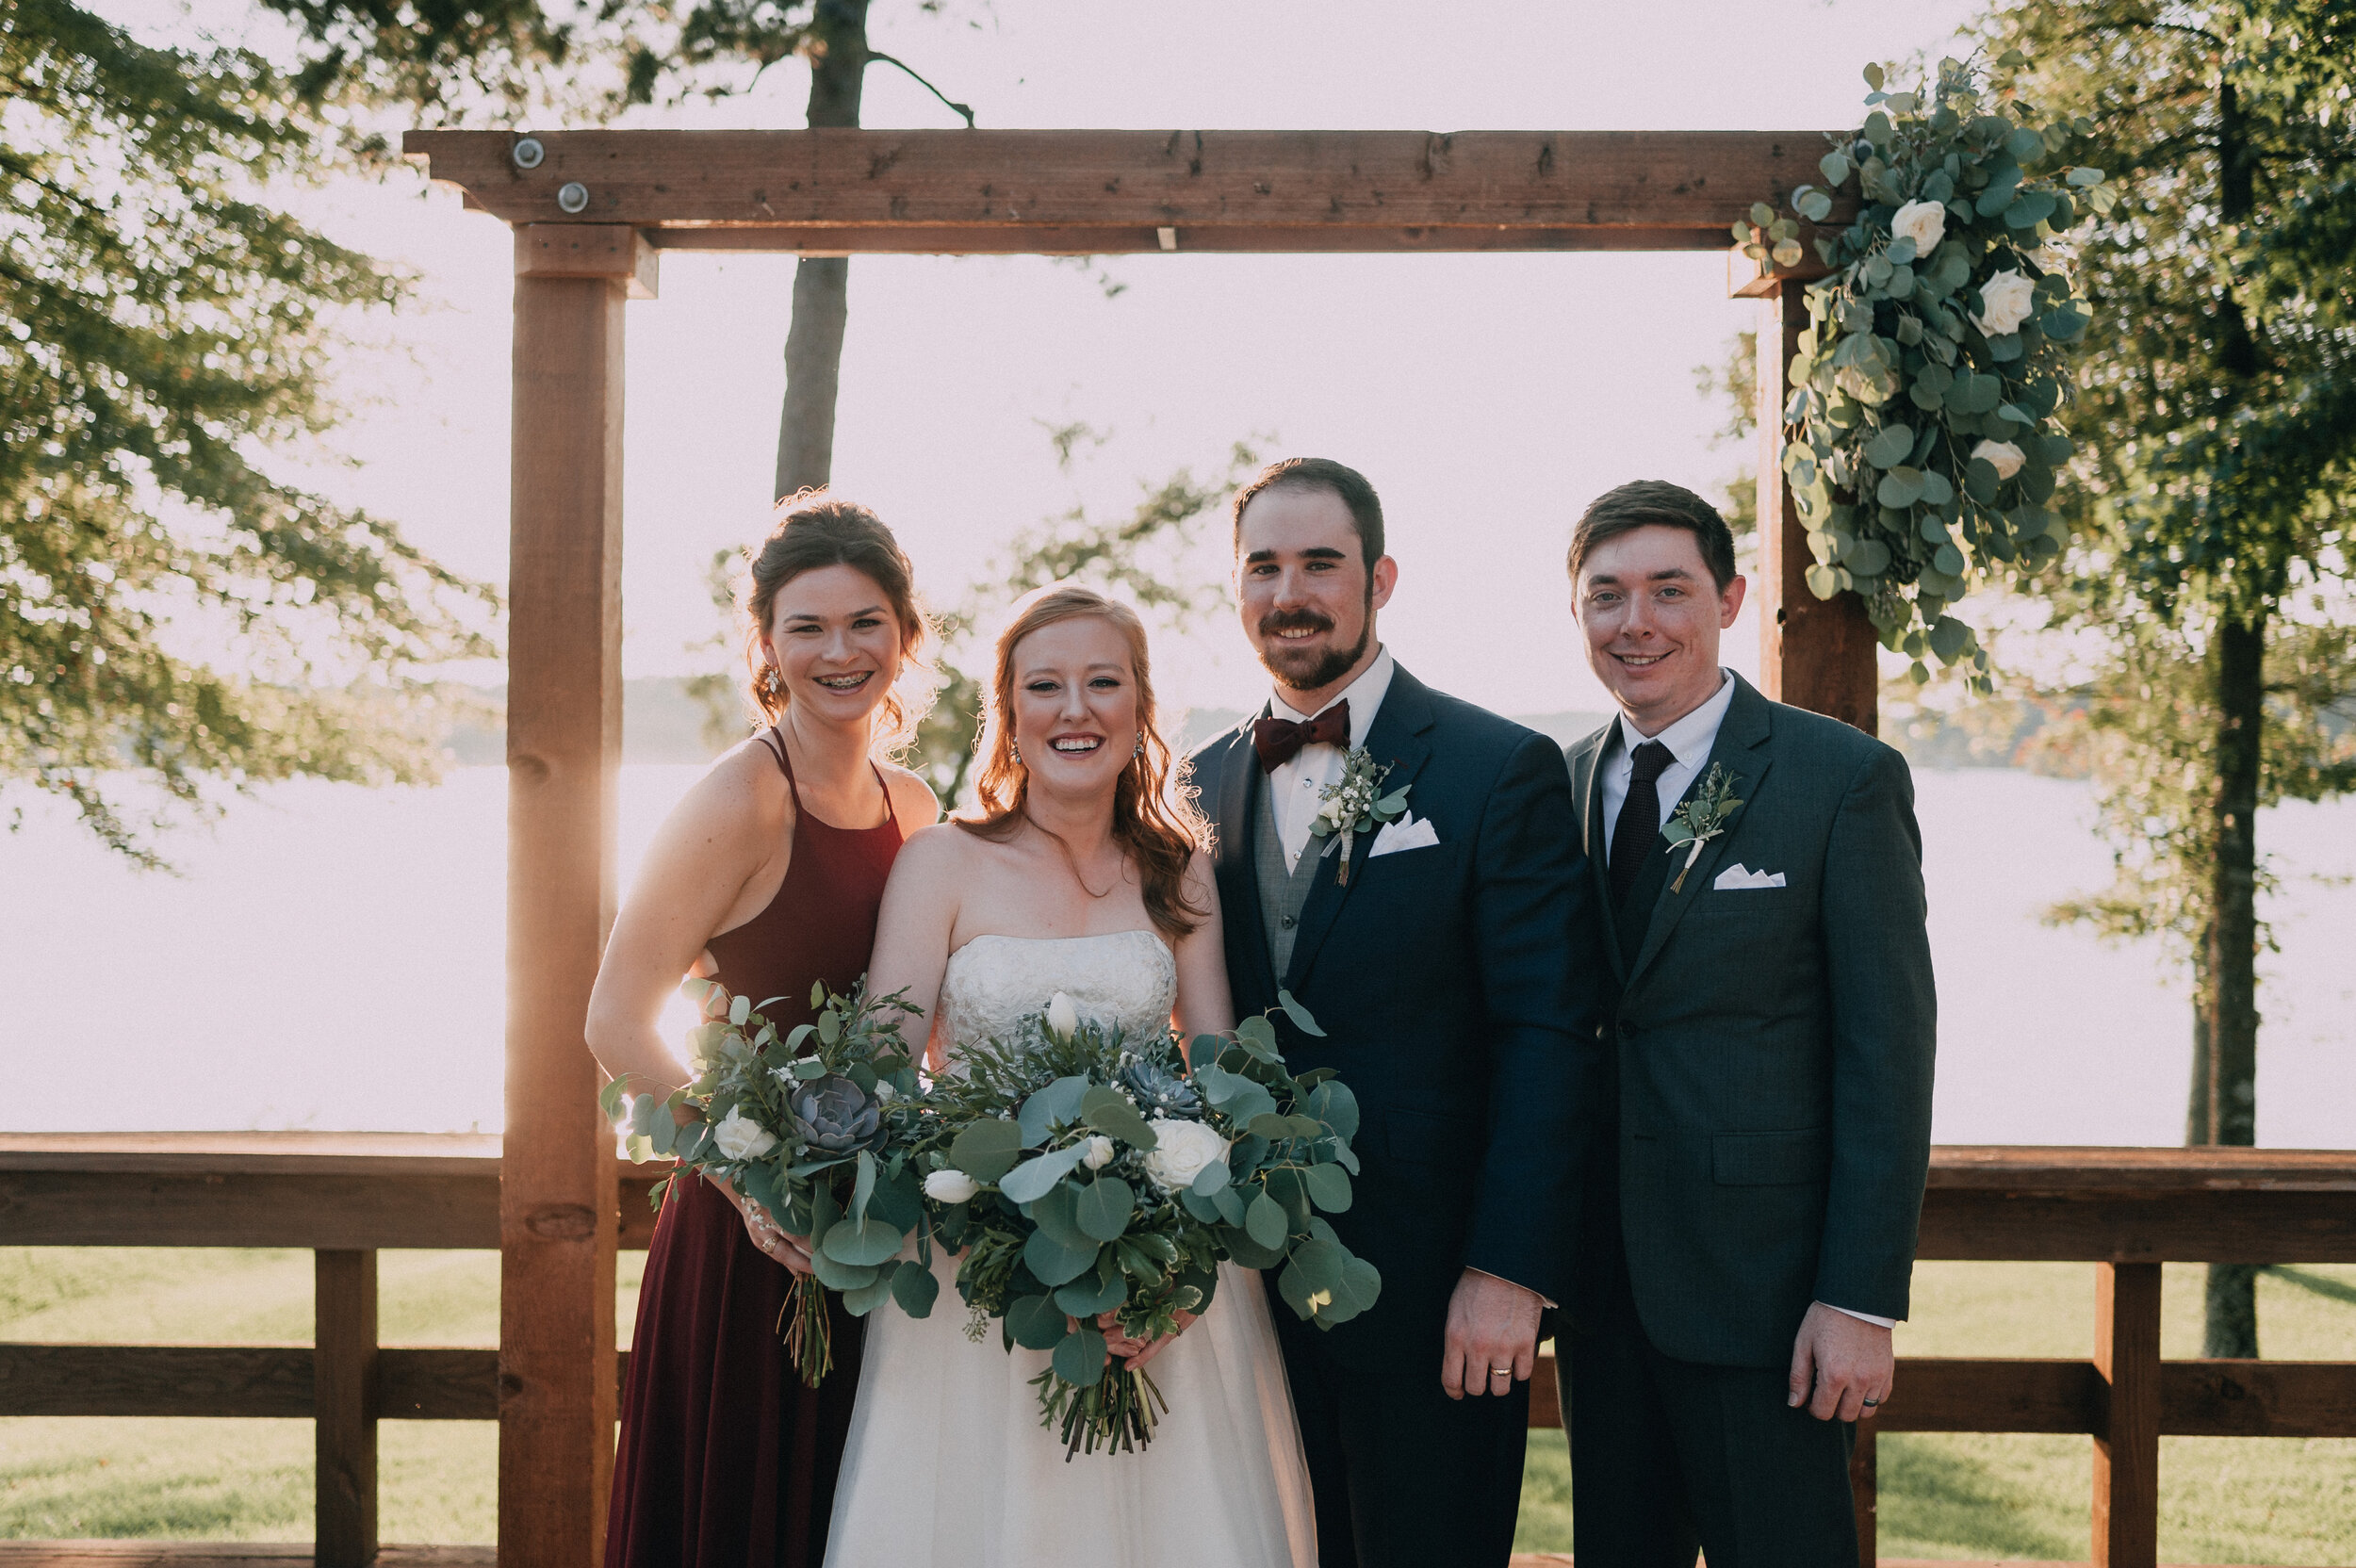 Katlin and Dalton Wedding 2019 (Austin Daniel Photo) (415 of 754).jpg